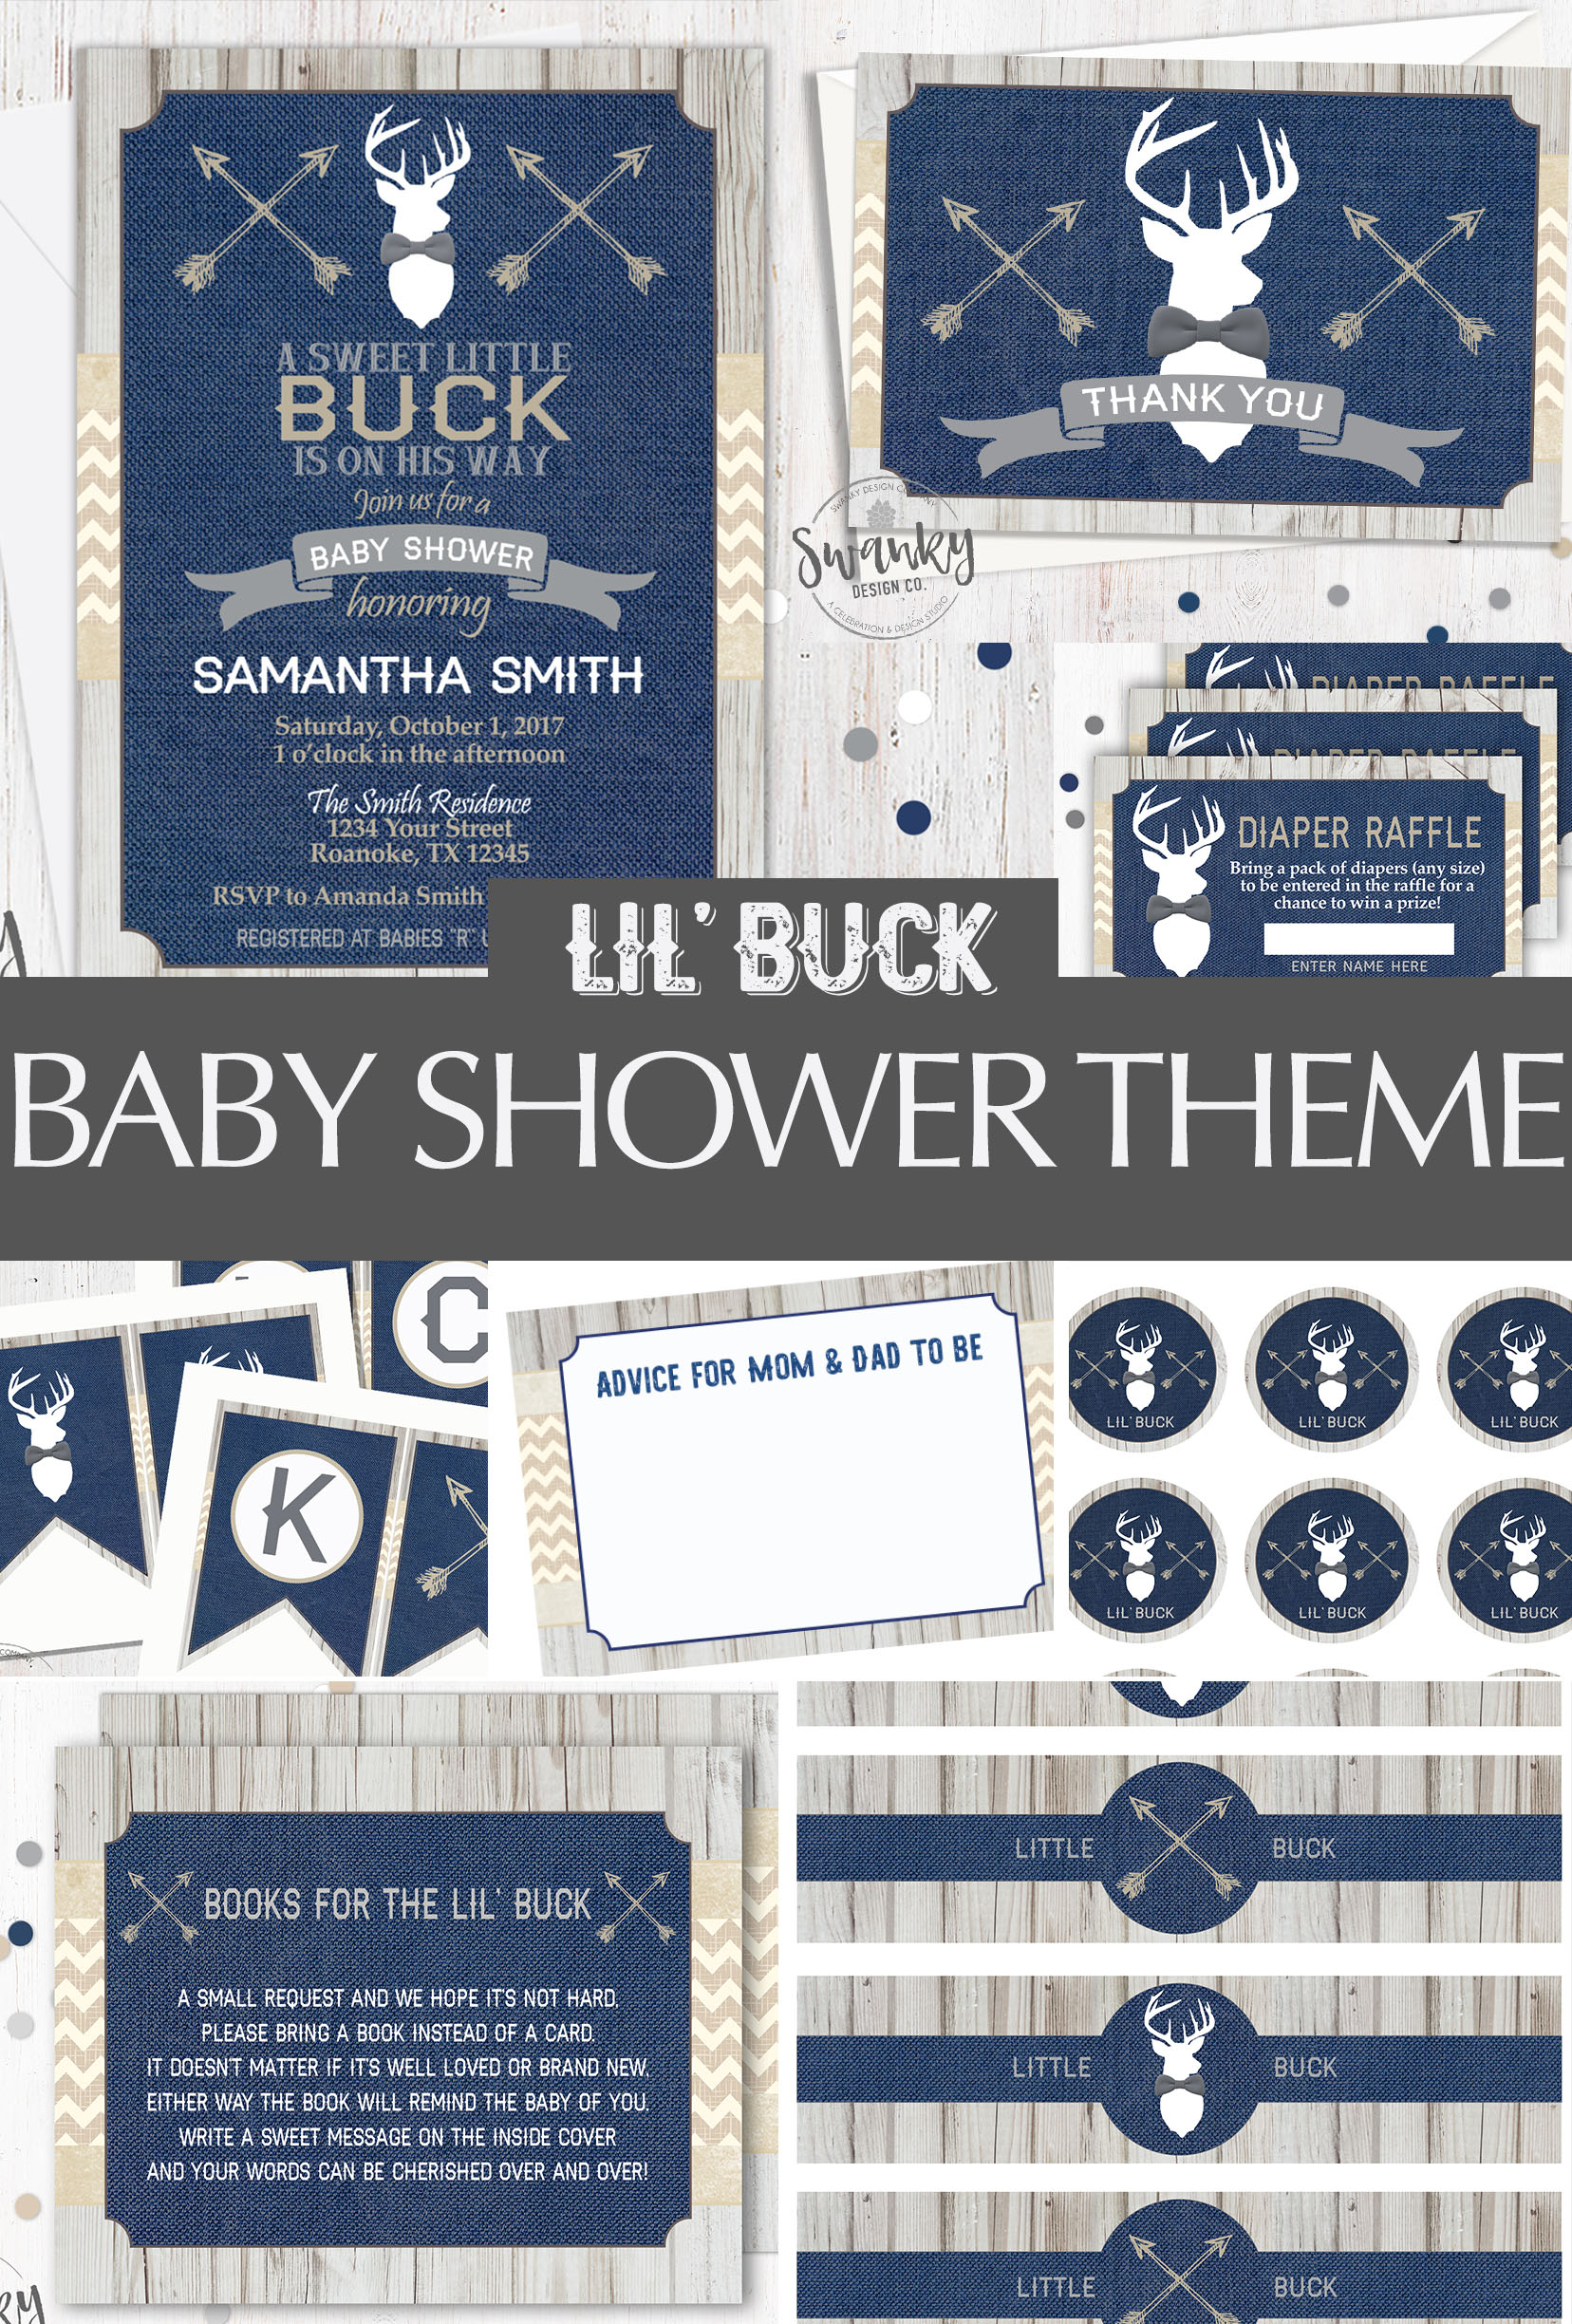 Little Buck Baby Shower Theme